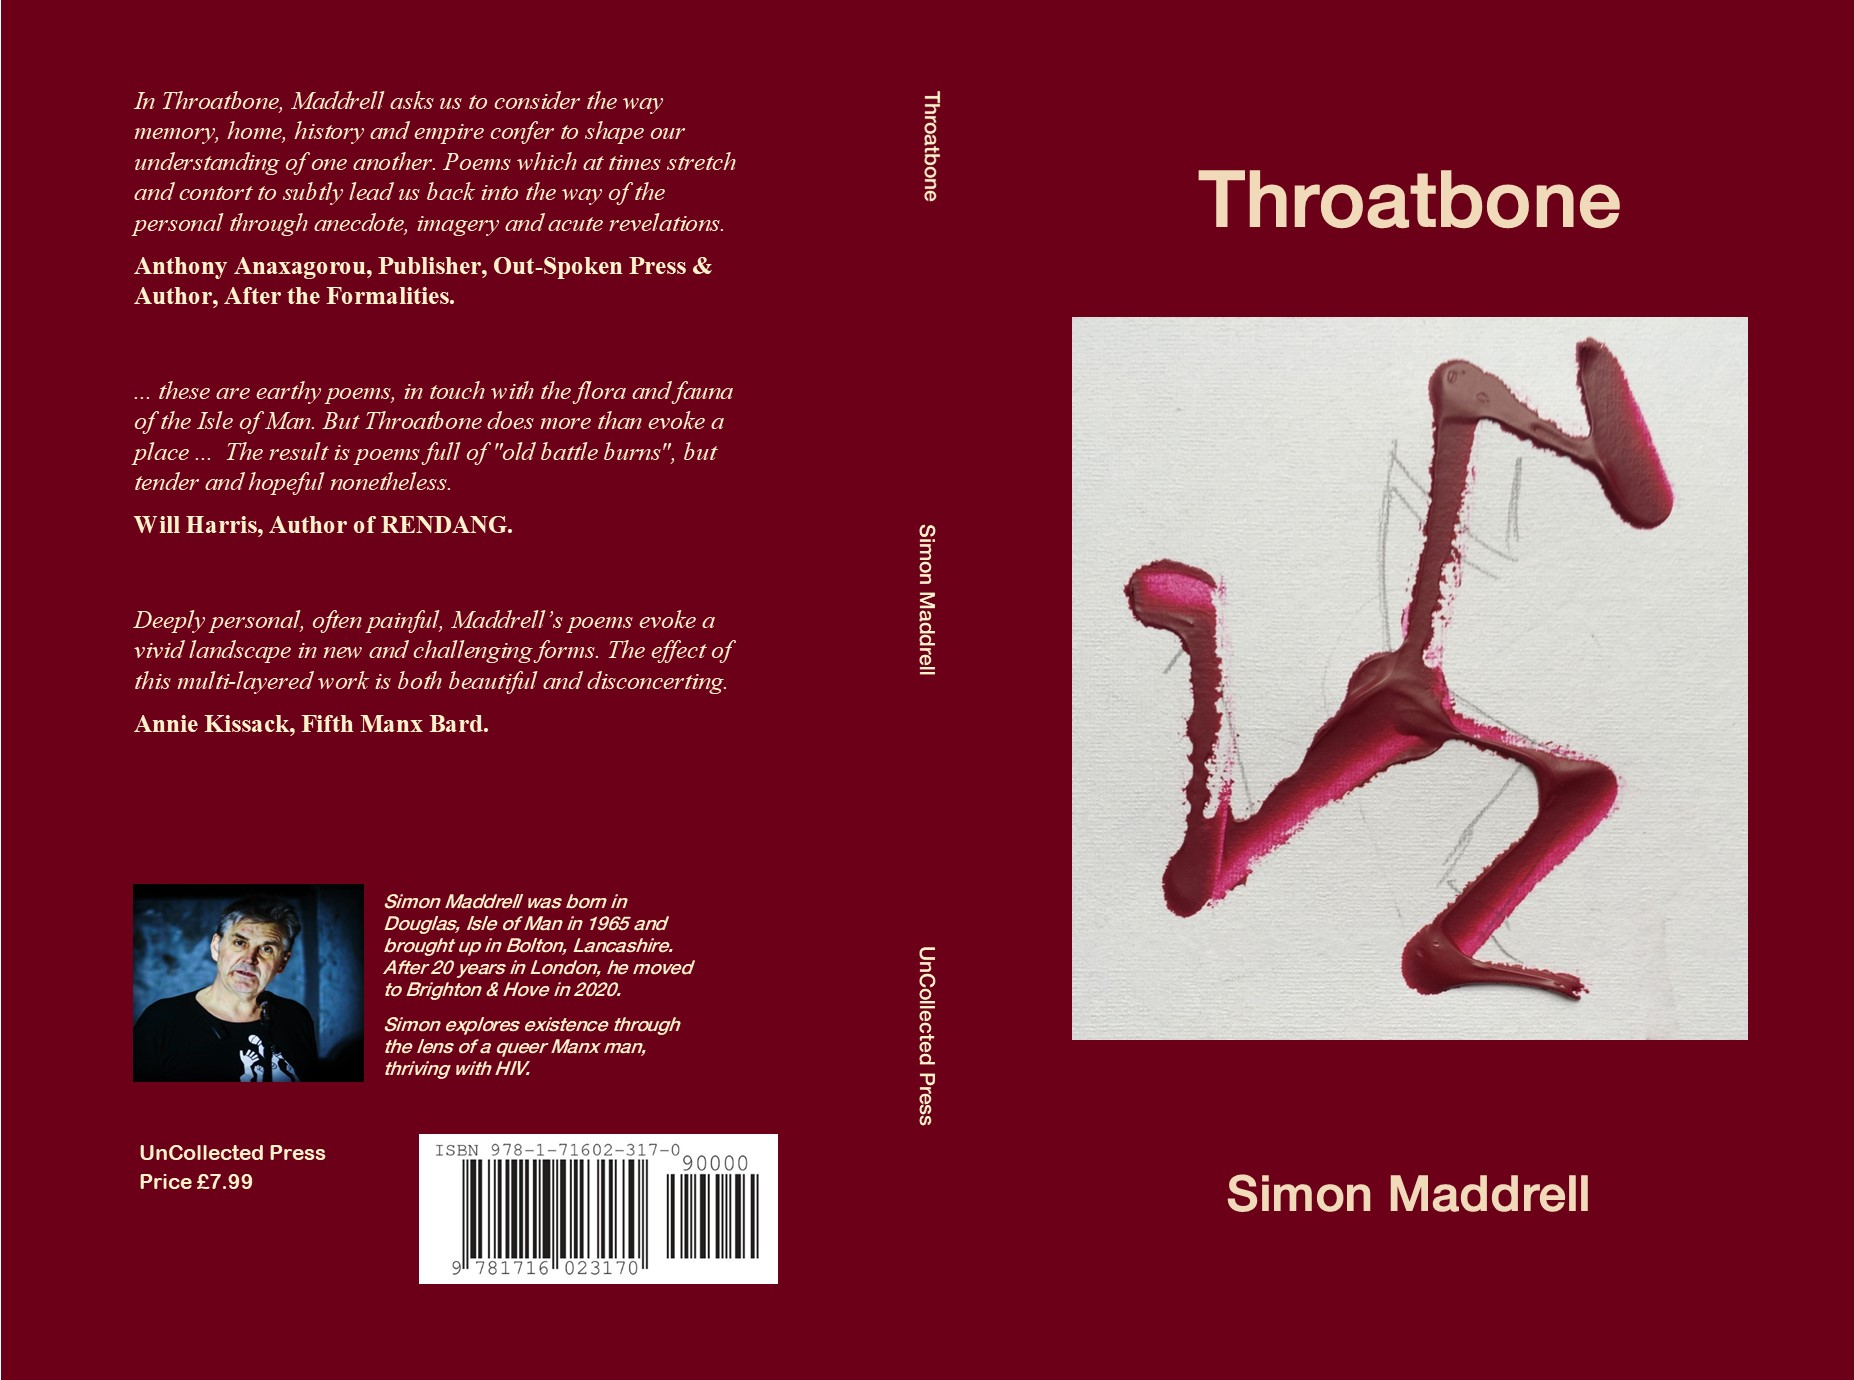 Simon Maddrell Throast Bone Cover Layout 20200715 002